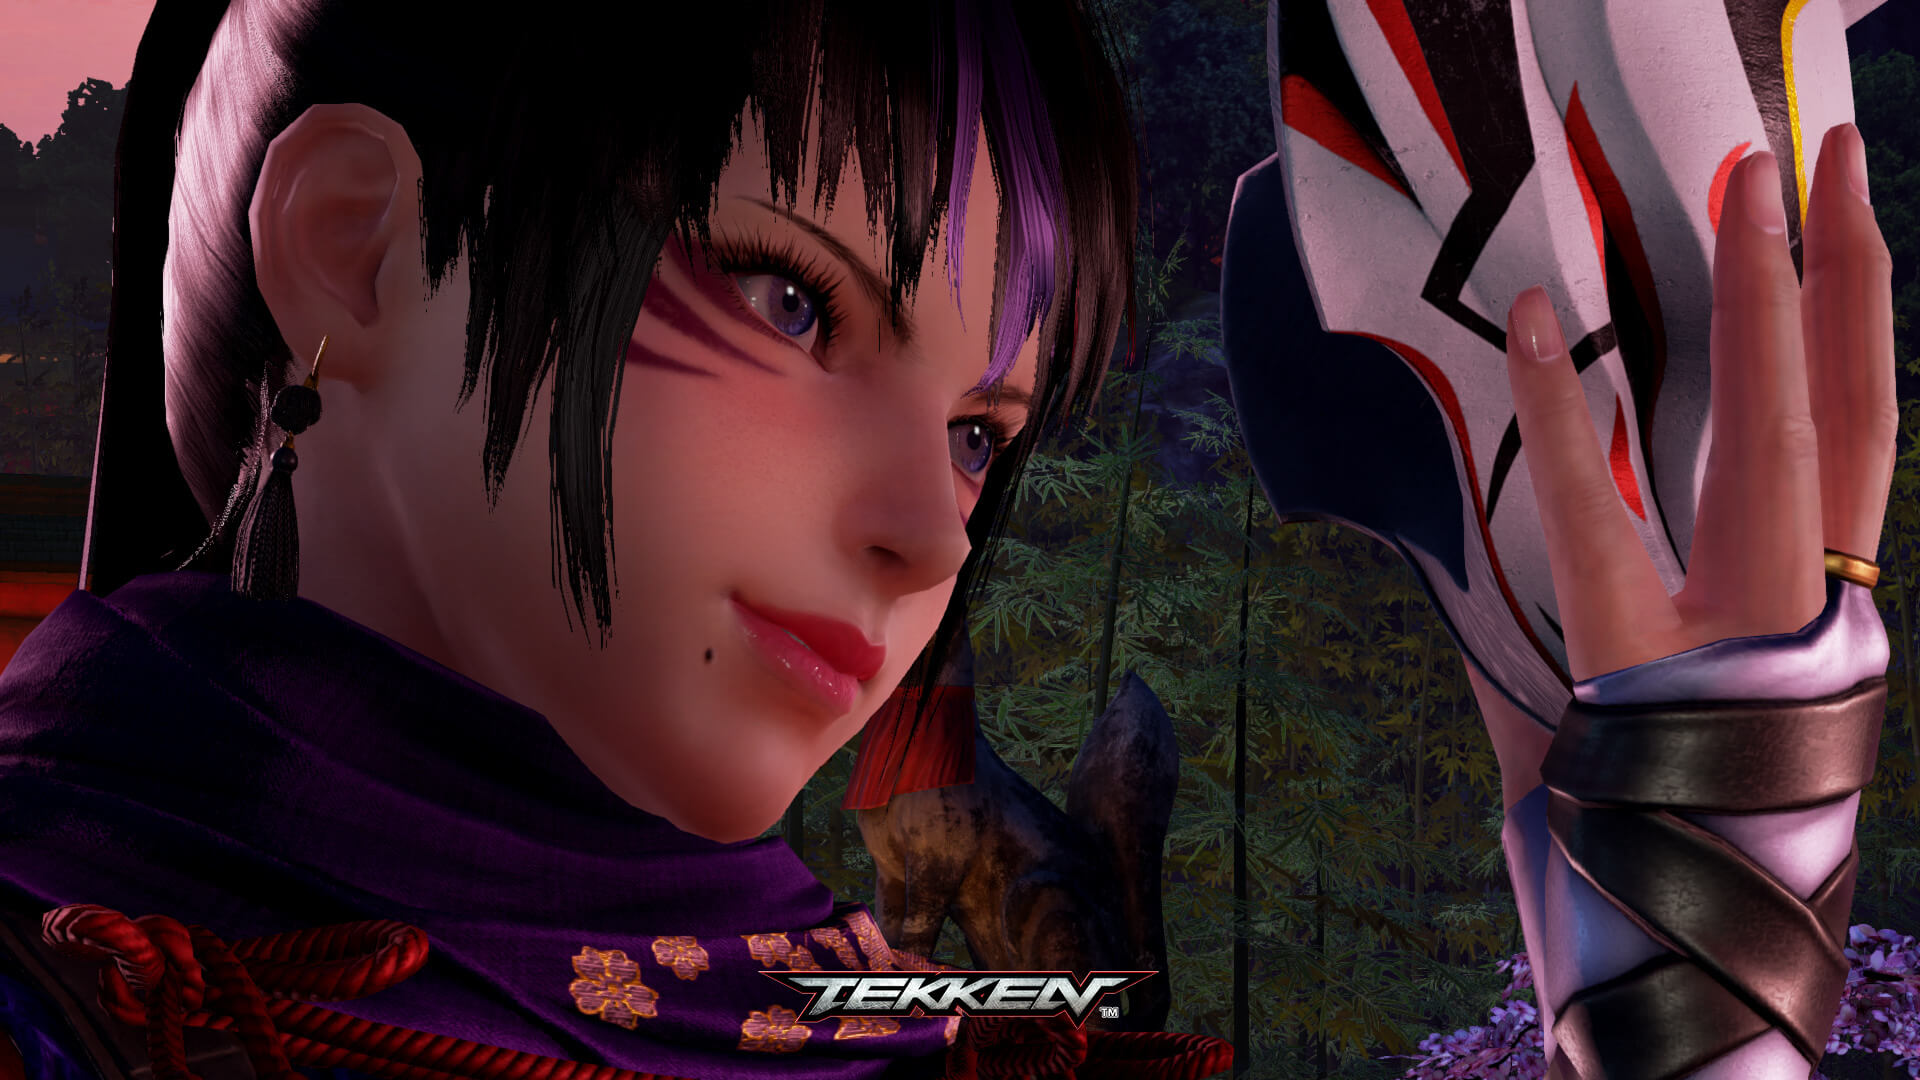 How Kunimitsu from Tekken 7 looks after the appearance in the trailer